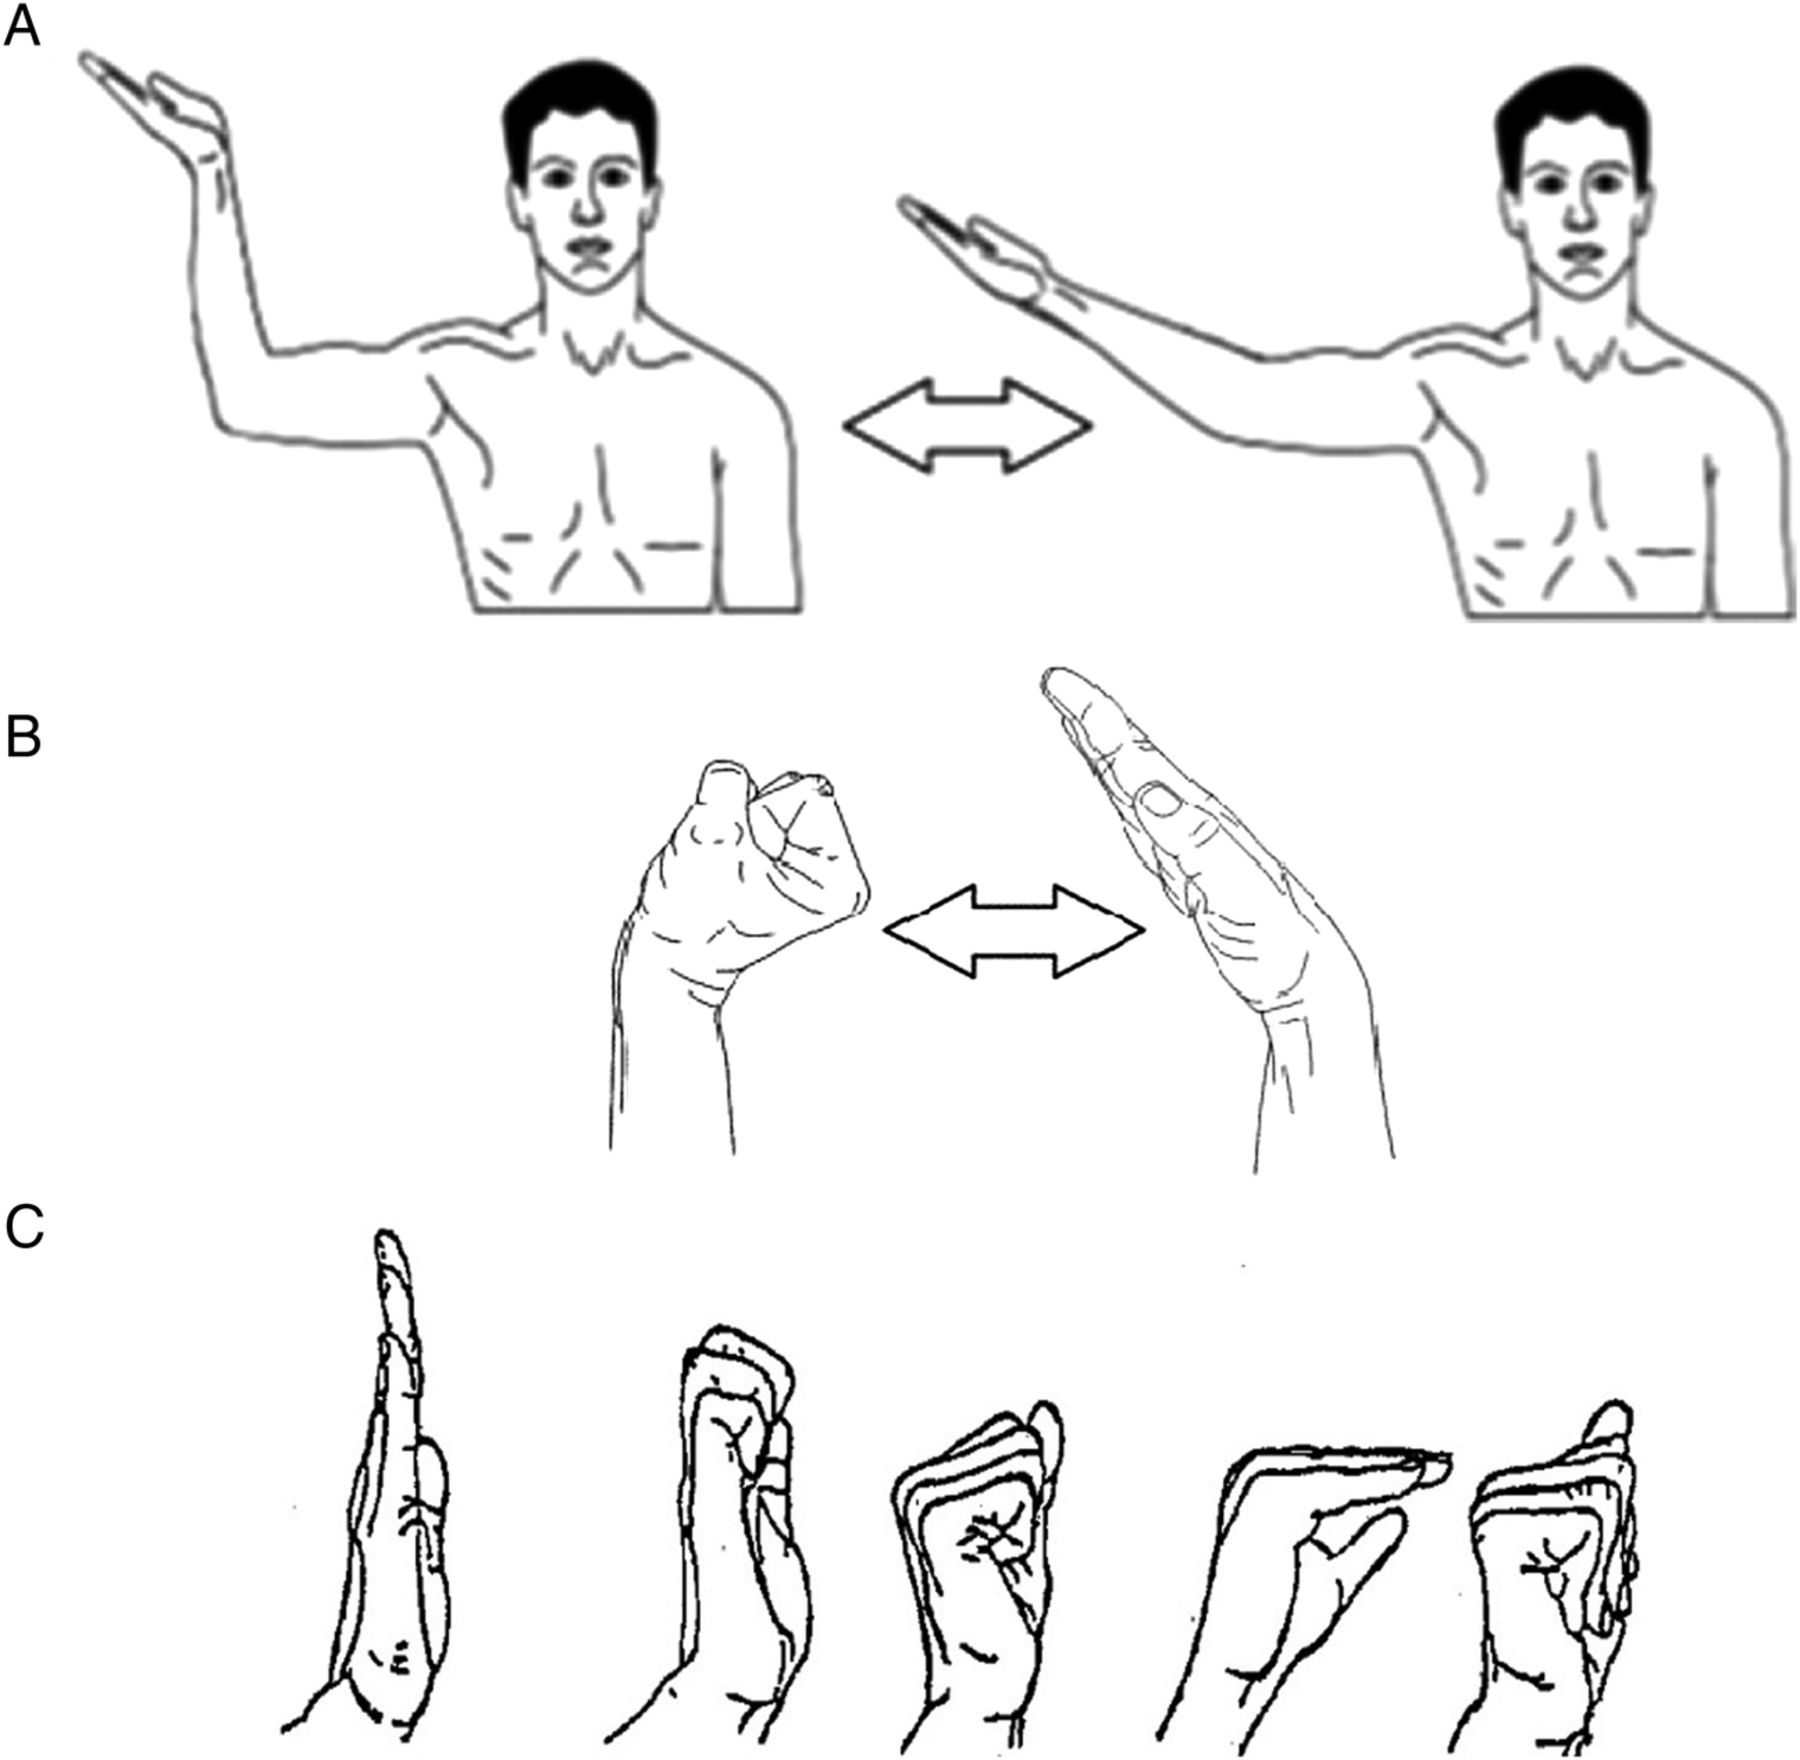 Education, night splinting and exercise versus usual care